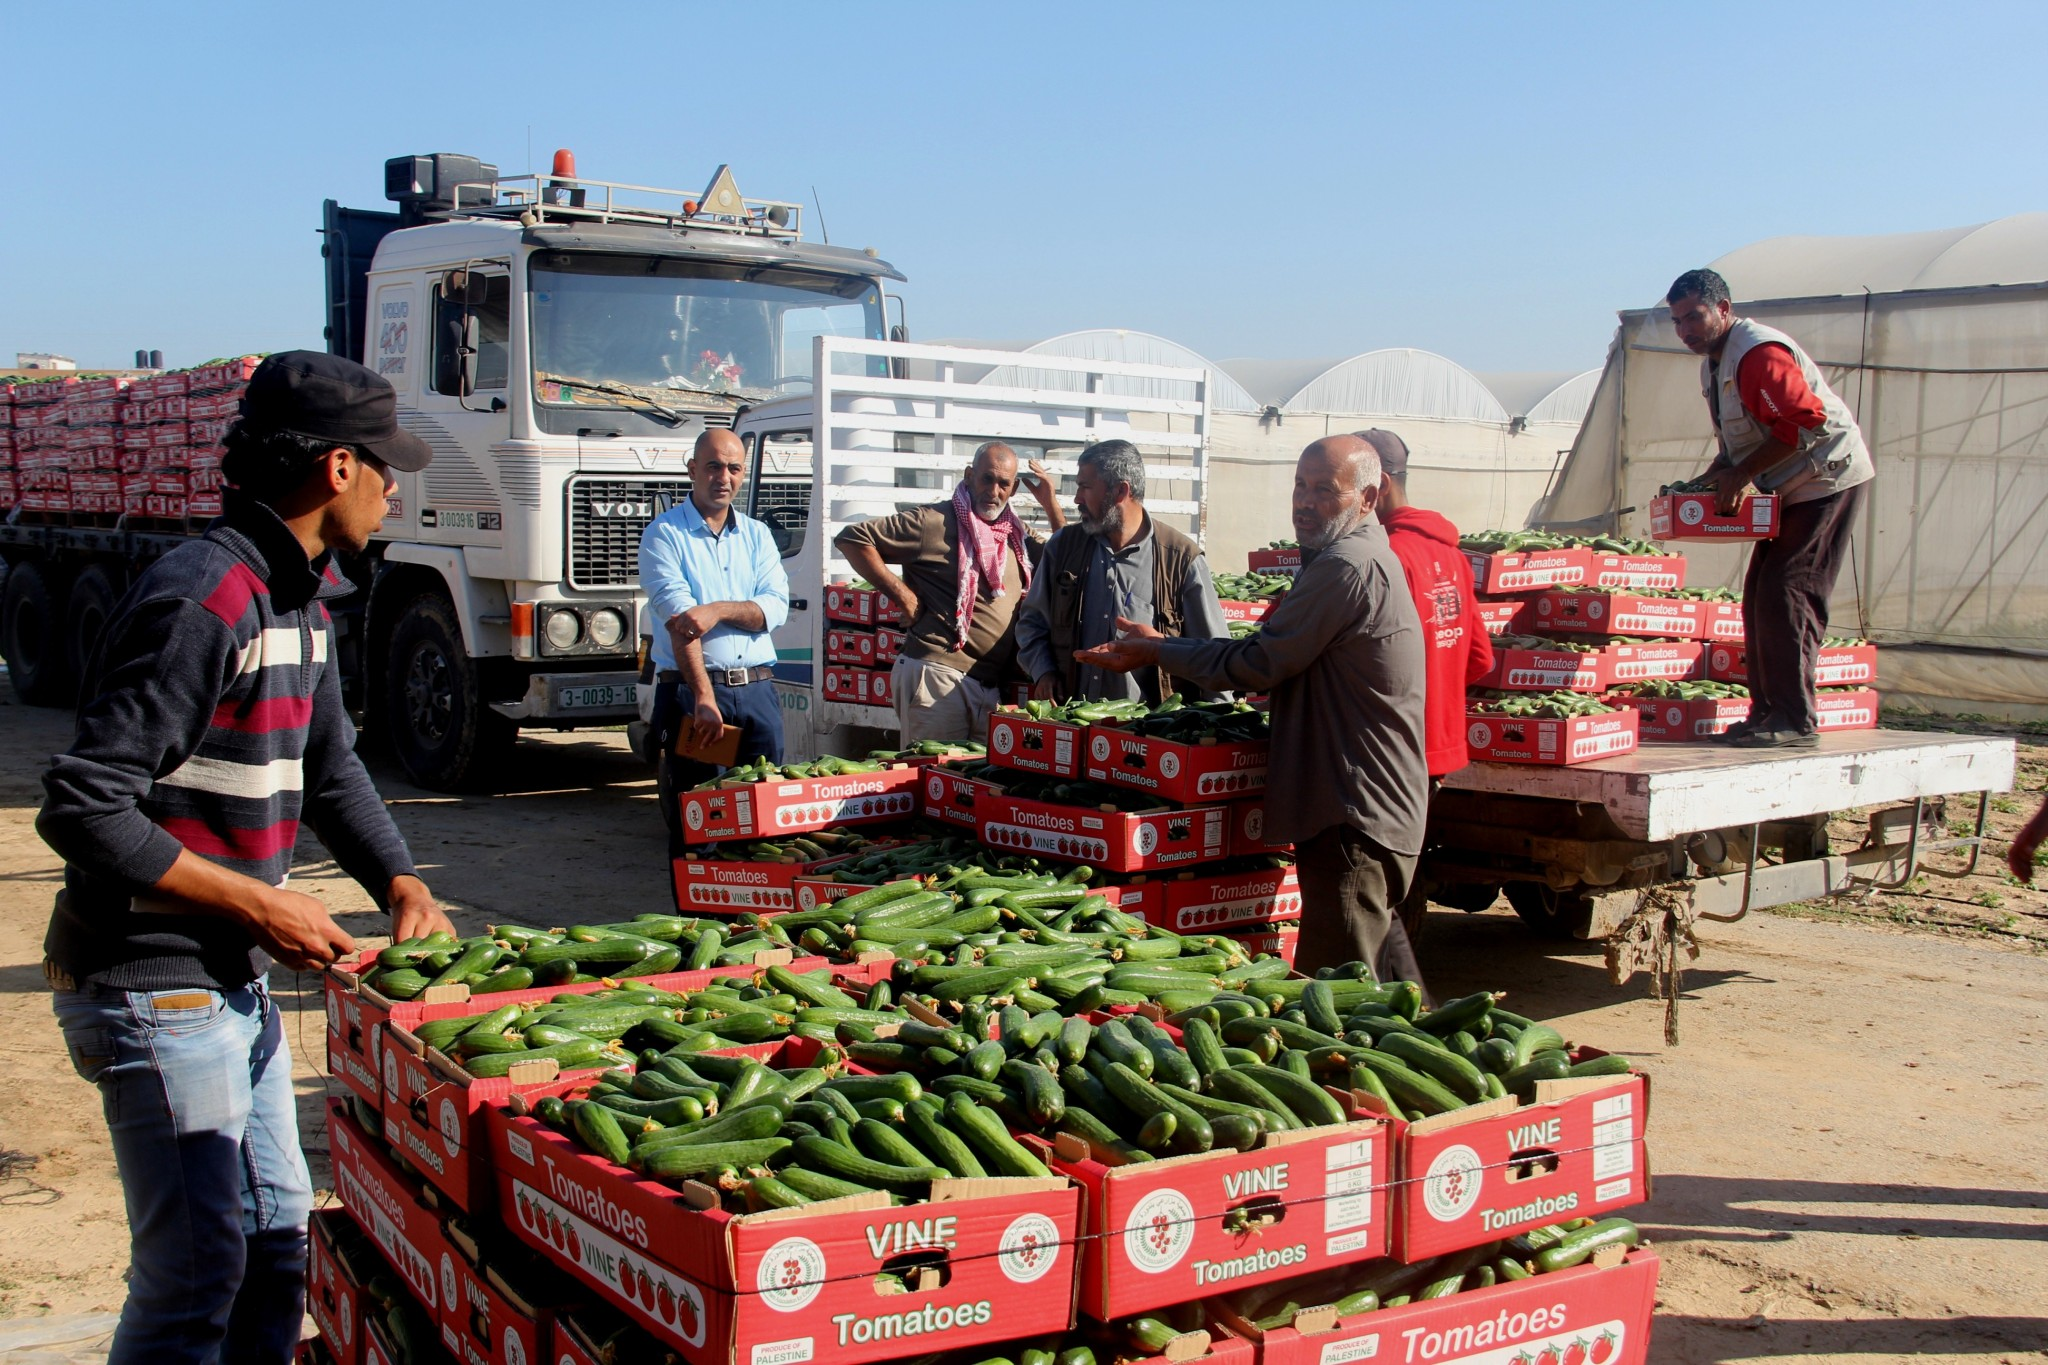 Cucambers from Gaza on the way to market in Israel. Since 2015, Israel allows limited sales of vegetables from Gaza. Photo by Gisha